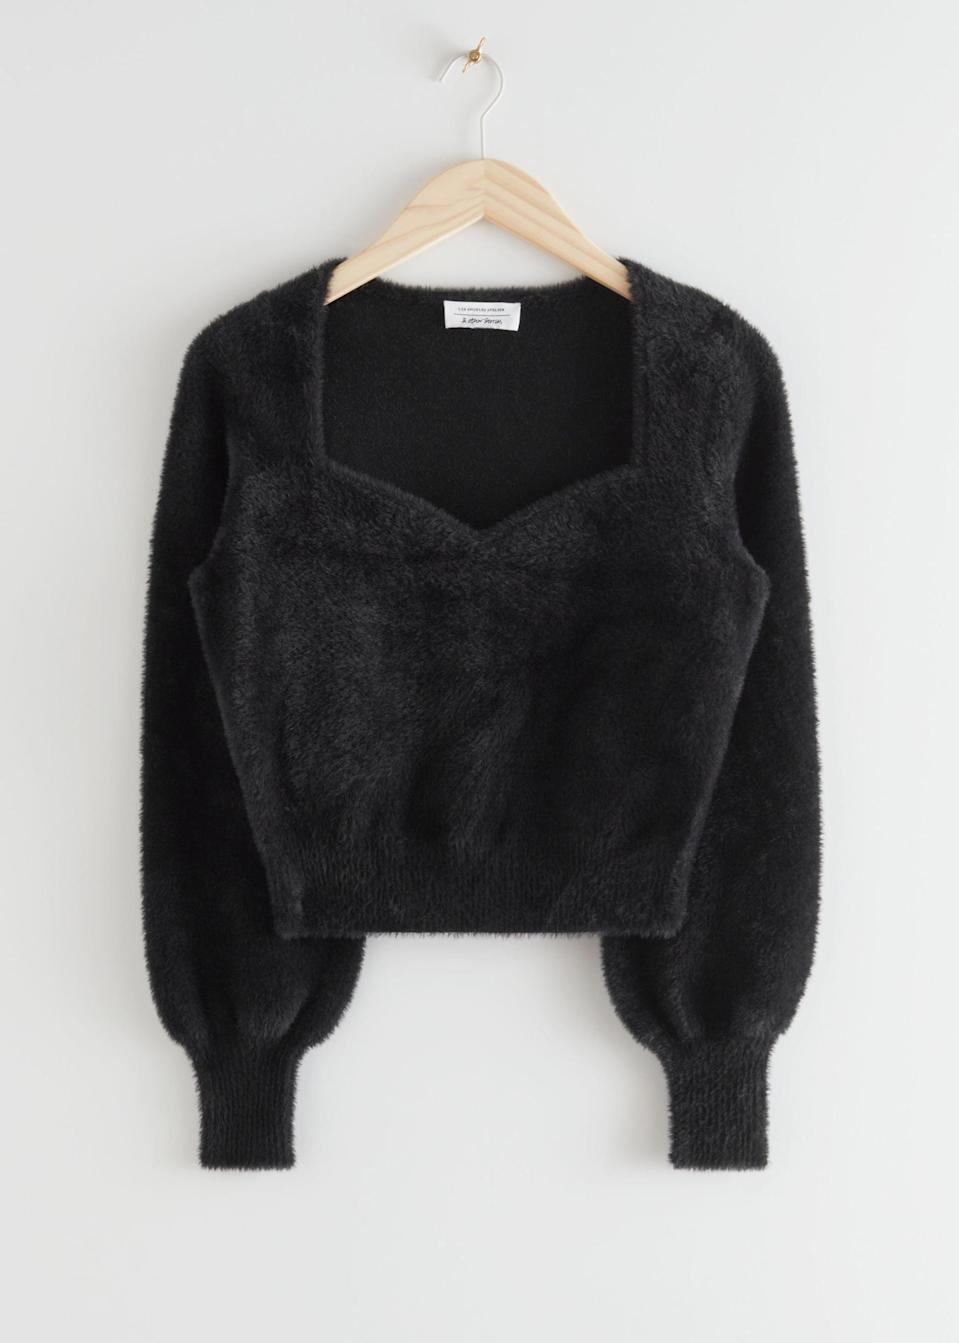 <p>This <span>&amp; Other Stories Cropped Sweetheart Neck Sweater</span> ($44, originally $89) is romantic and sweet.</p>